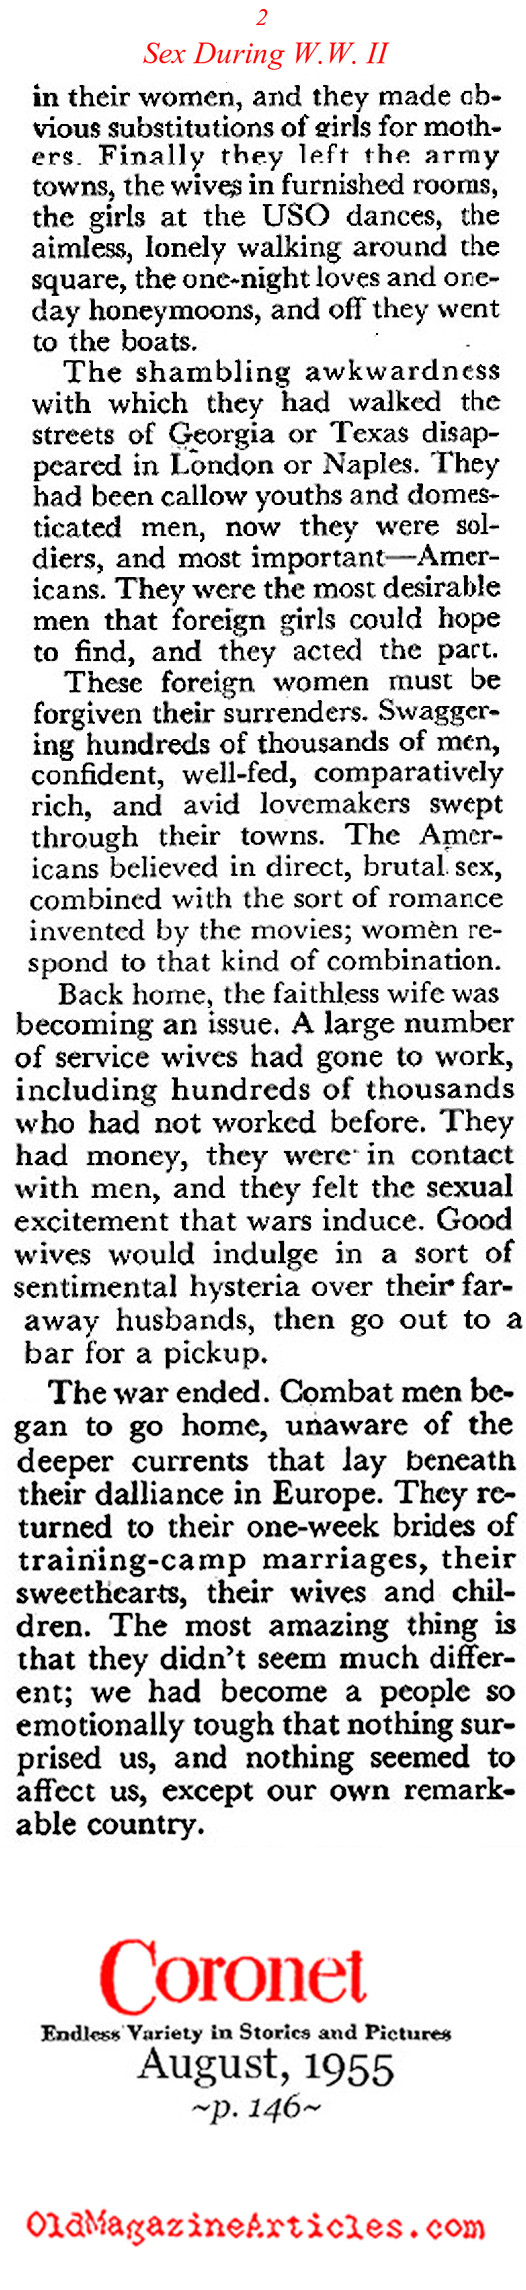 Sex During the Second World War (Coronet Magazine, 1955)